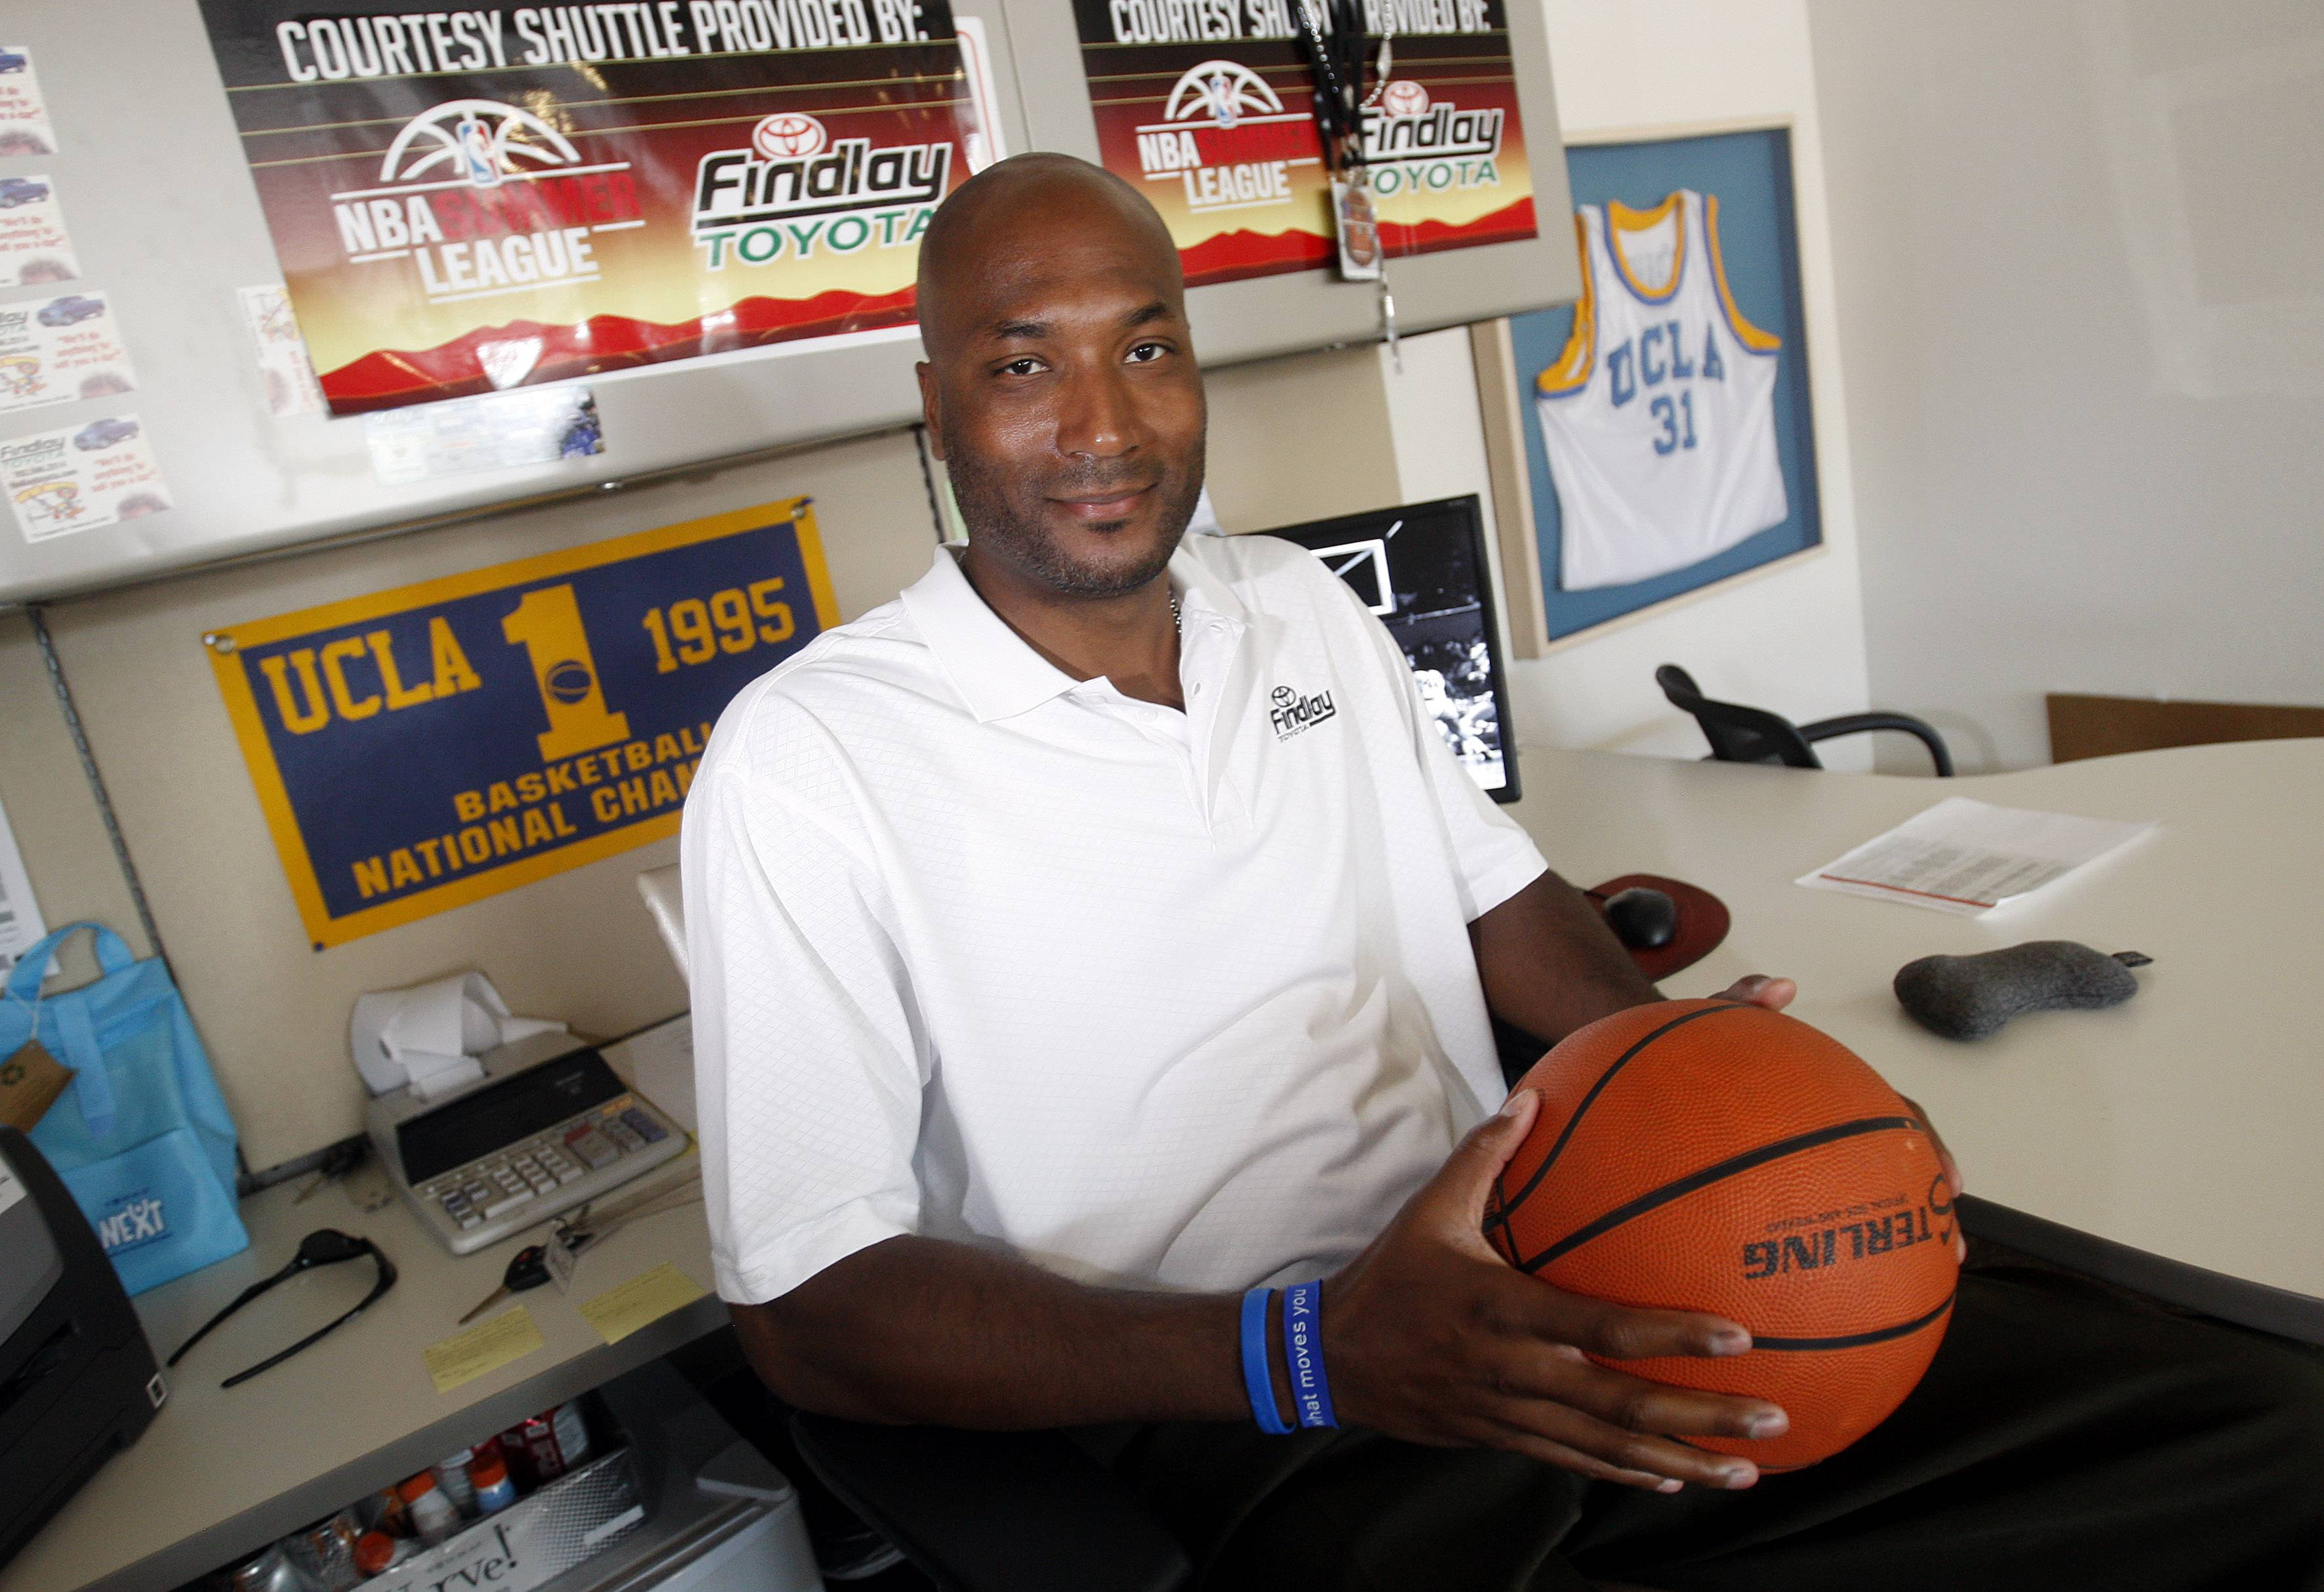 In this Sept. 18, 2010, file photo, former UCLA basketball player Ed O'Bannon Jr. sits in his office in Henderson, Nev.  Five years after the former UCLA star filed his antitrust lawsuit against the NCAA, it goes to trial Monday in a California courtroom.